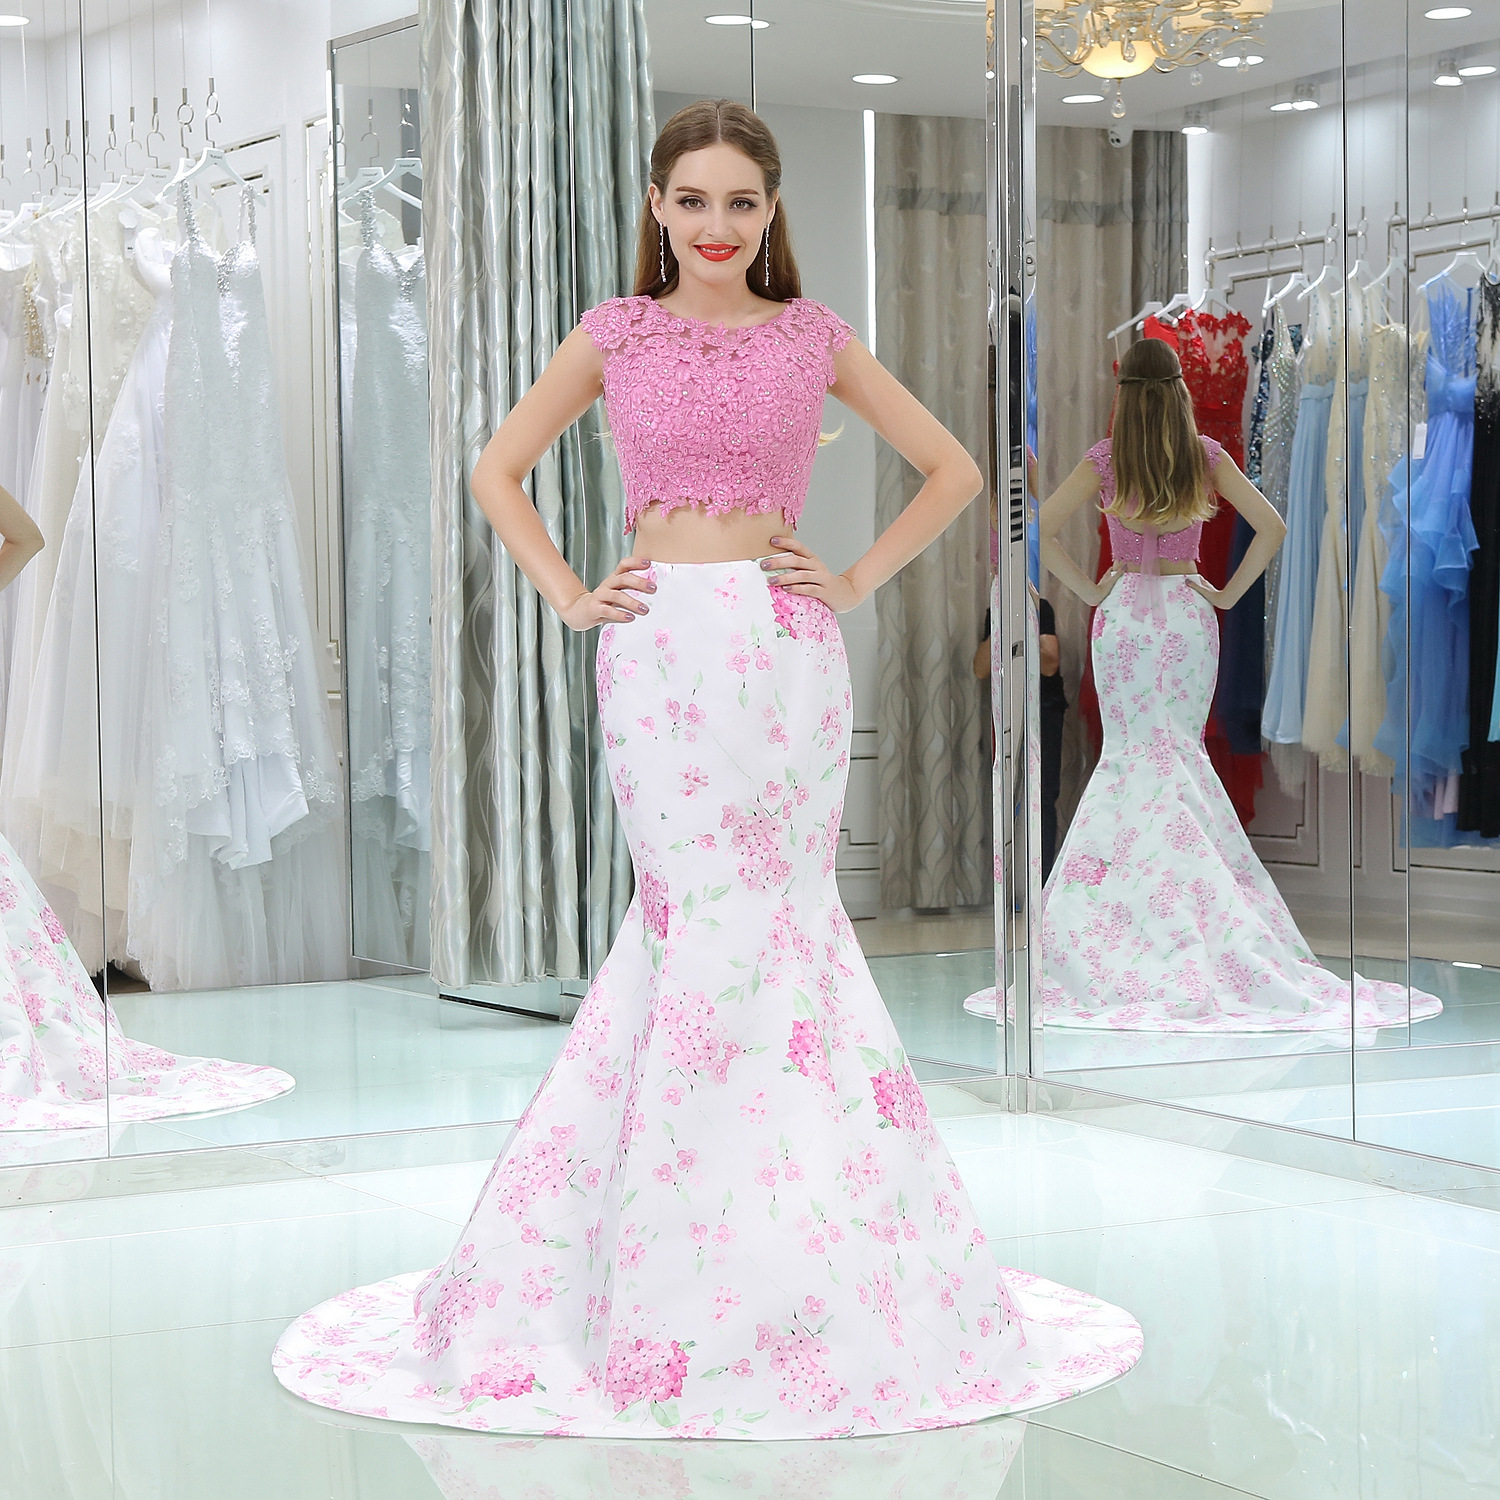 Custom Made Two-piece Suit Crop Top Mermaind Sweep Train O Neck Cap Sleeve With Crystal Pattern Back Lace Up Evening Dresses